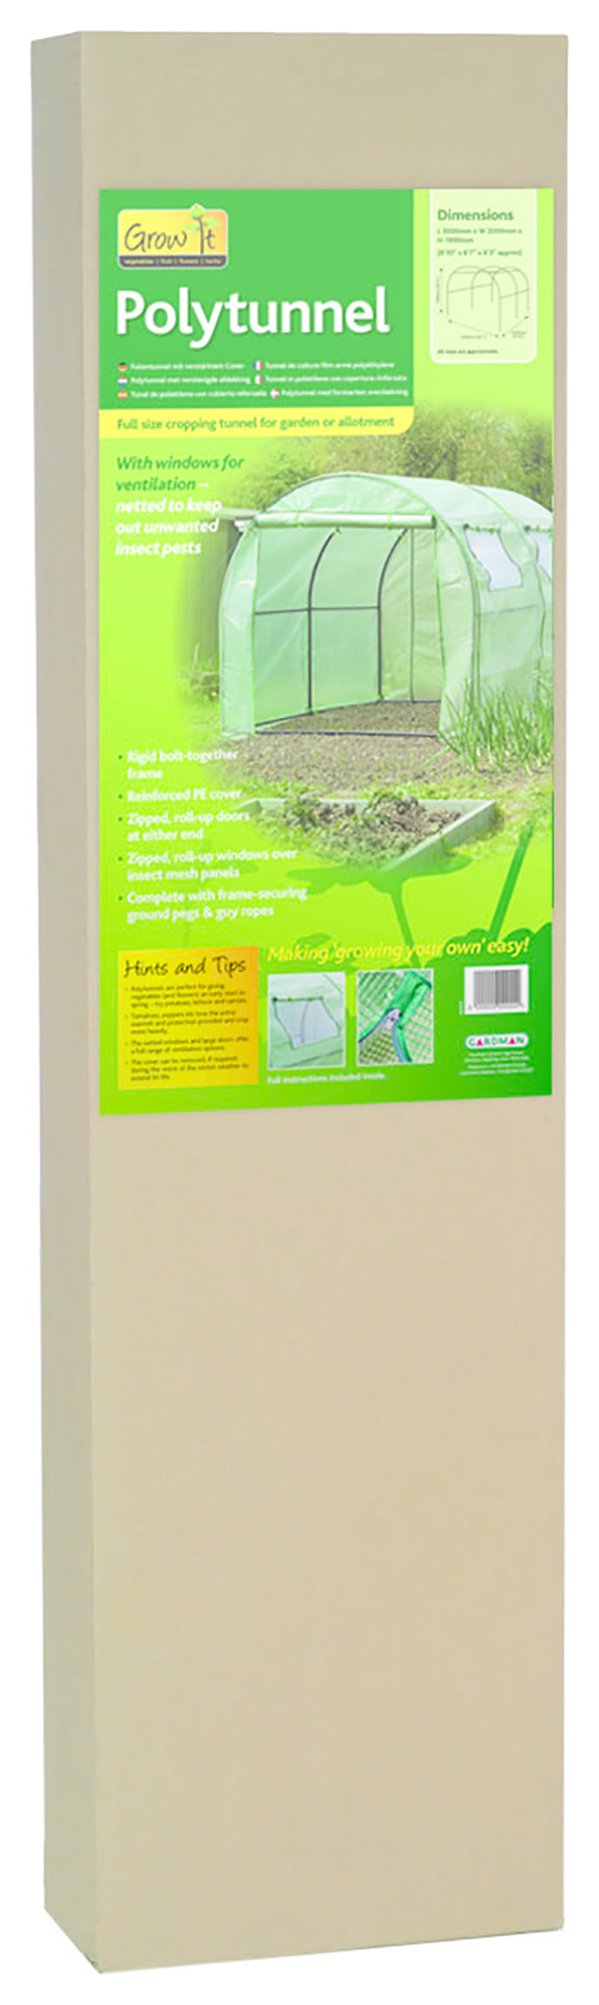 Gardman Polytunnel with Reinforced Cover.